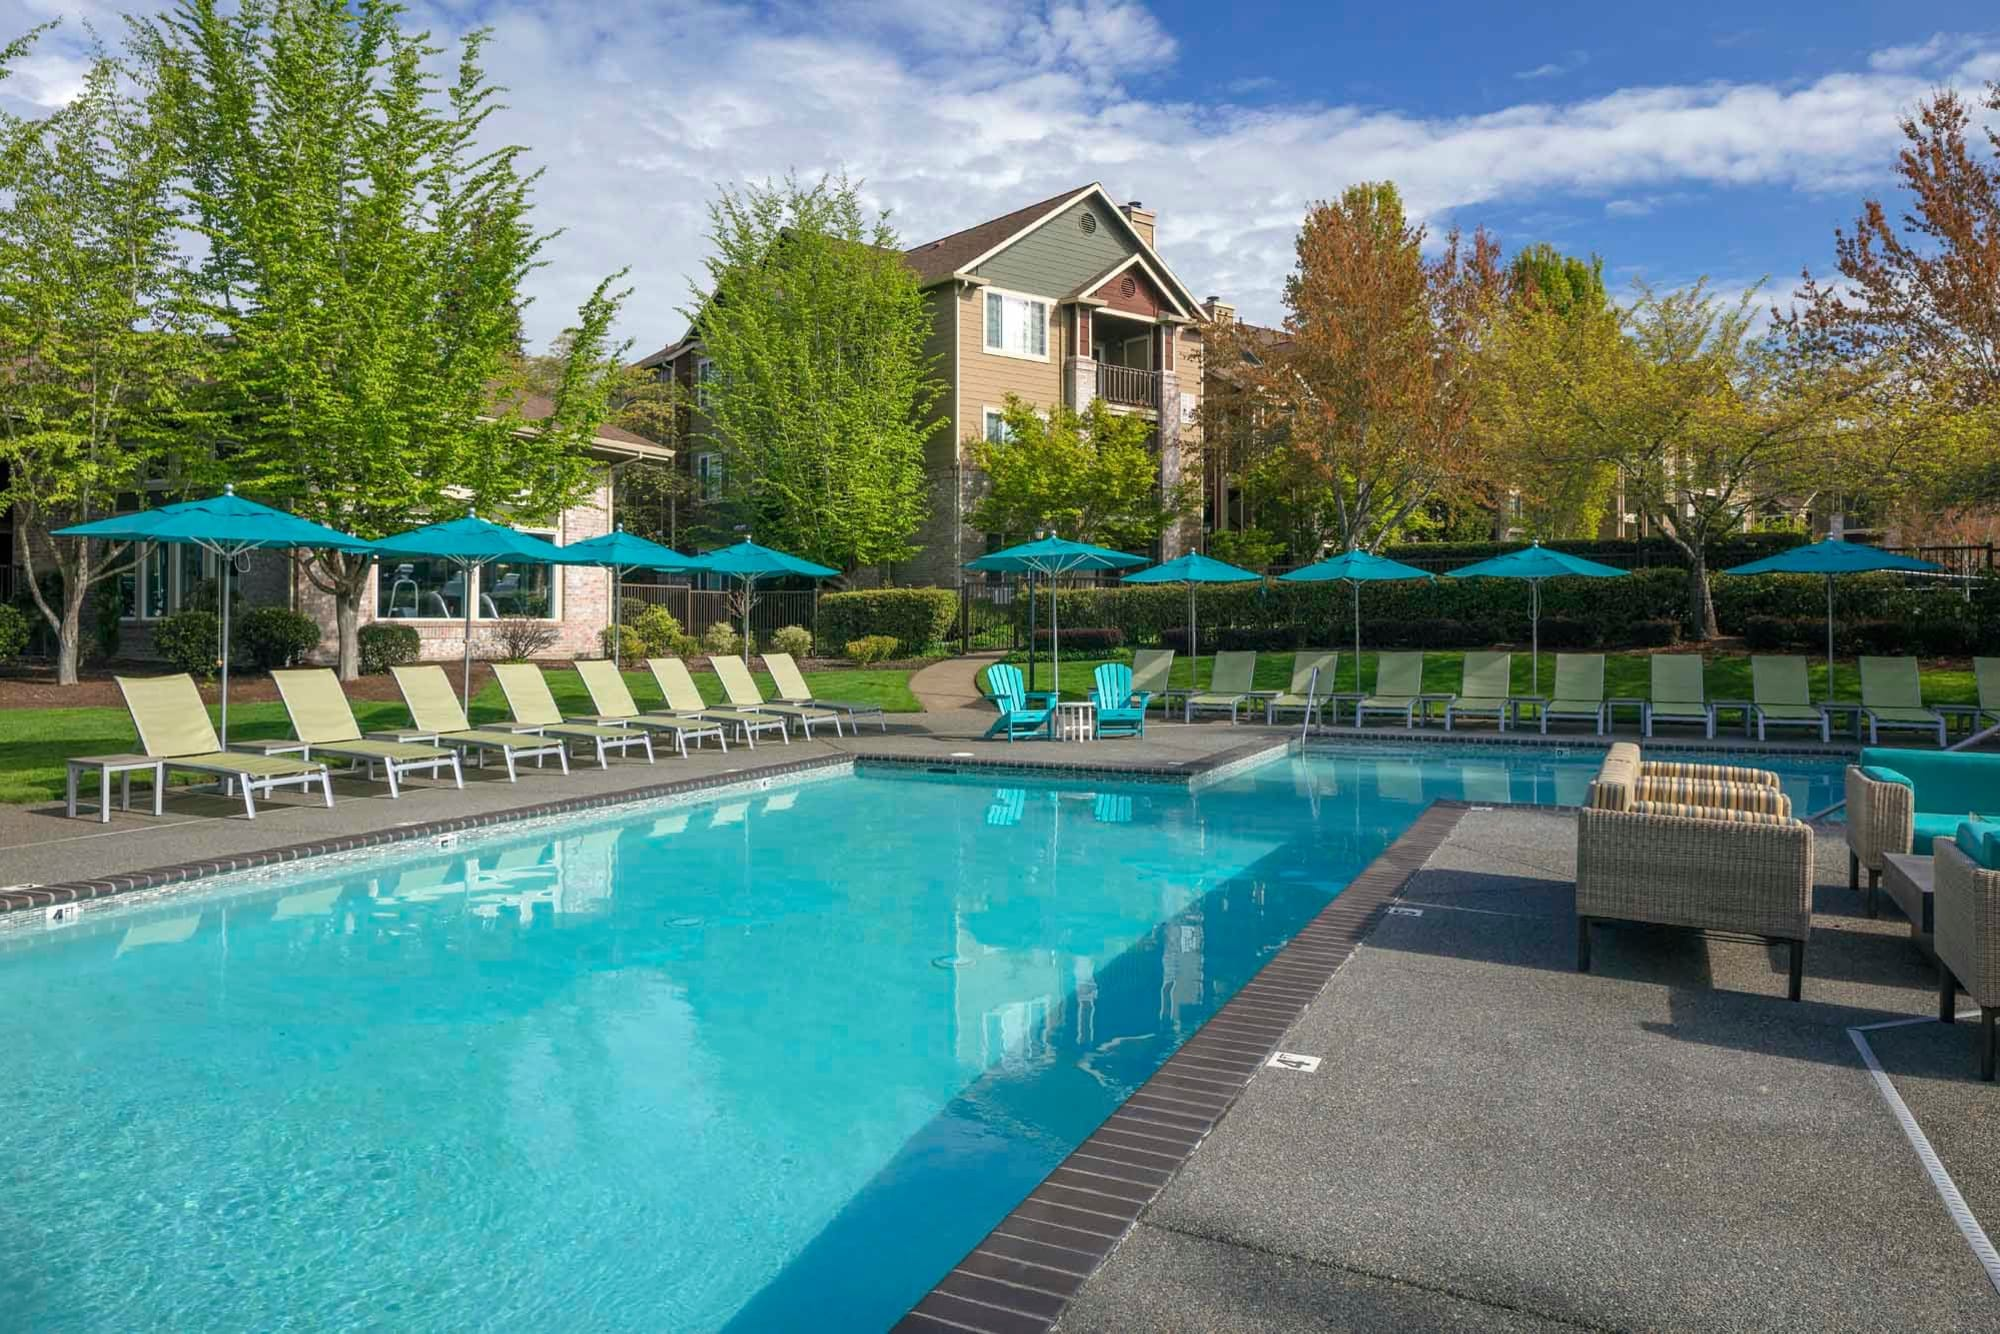 The pool area at The Grove at Orenco Station in Hillsboro, Oregon